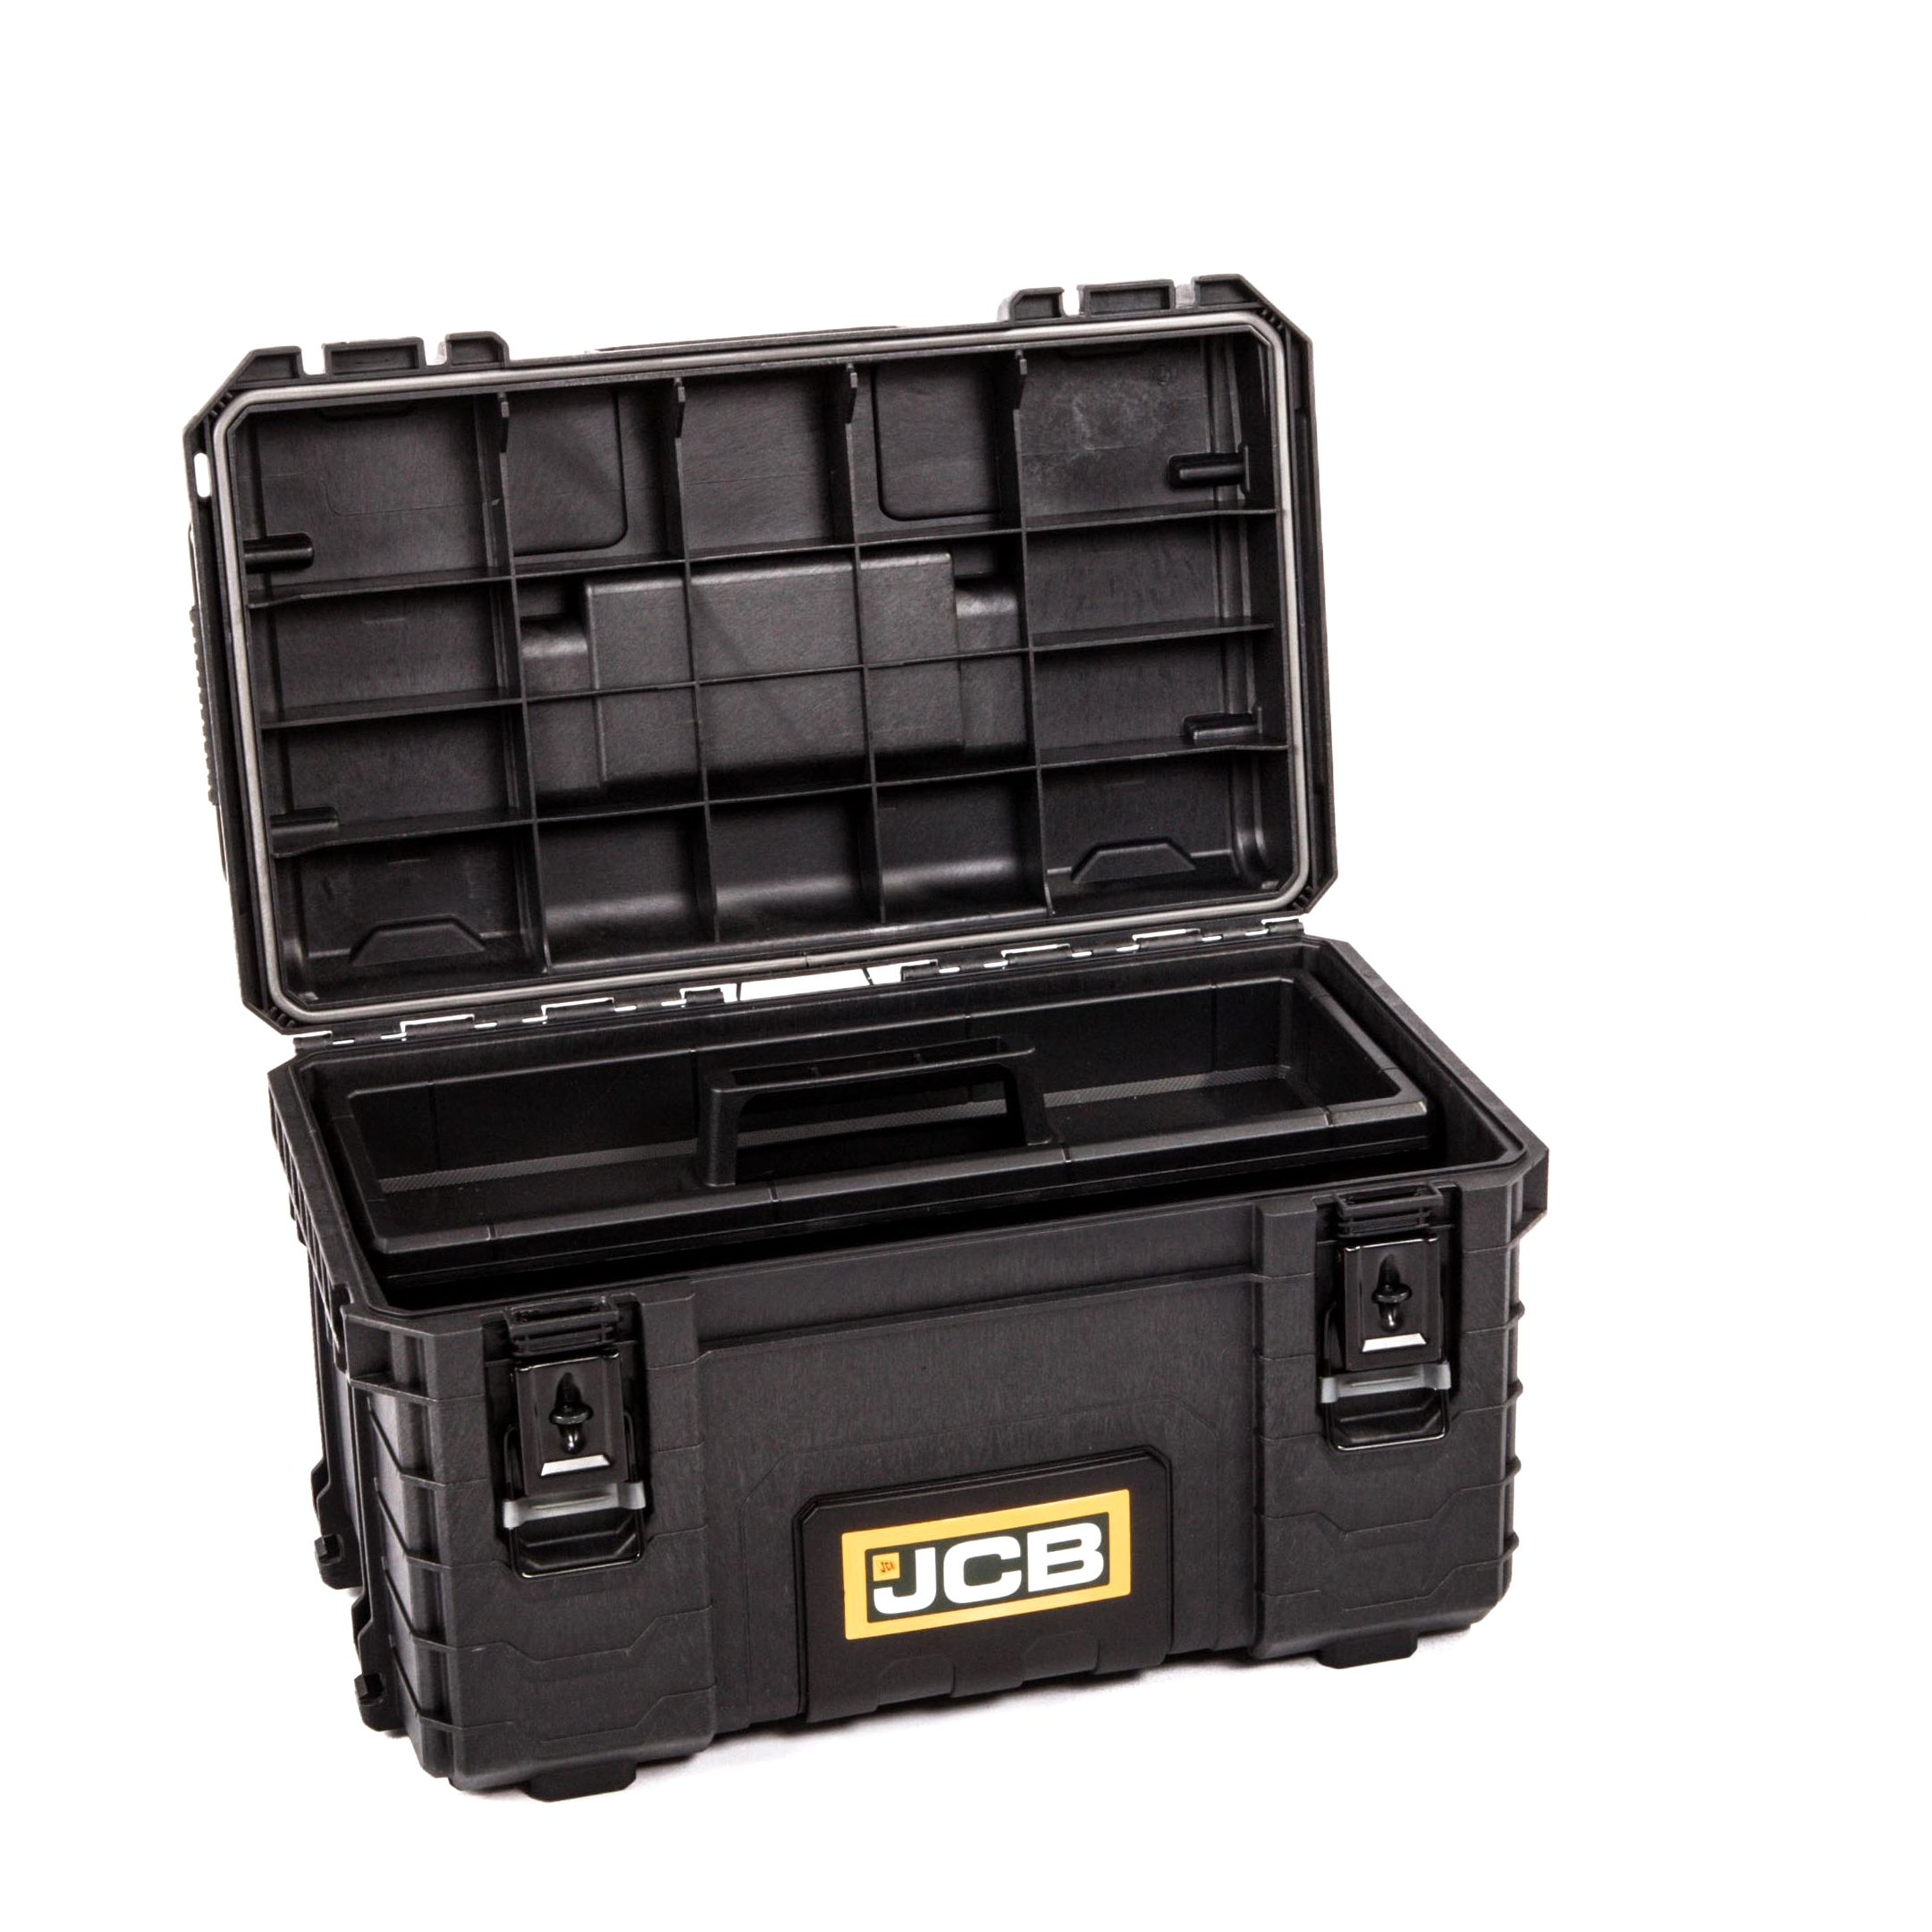 Tool Boxes & Organisers